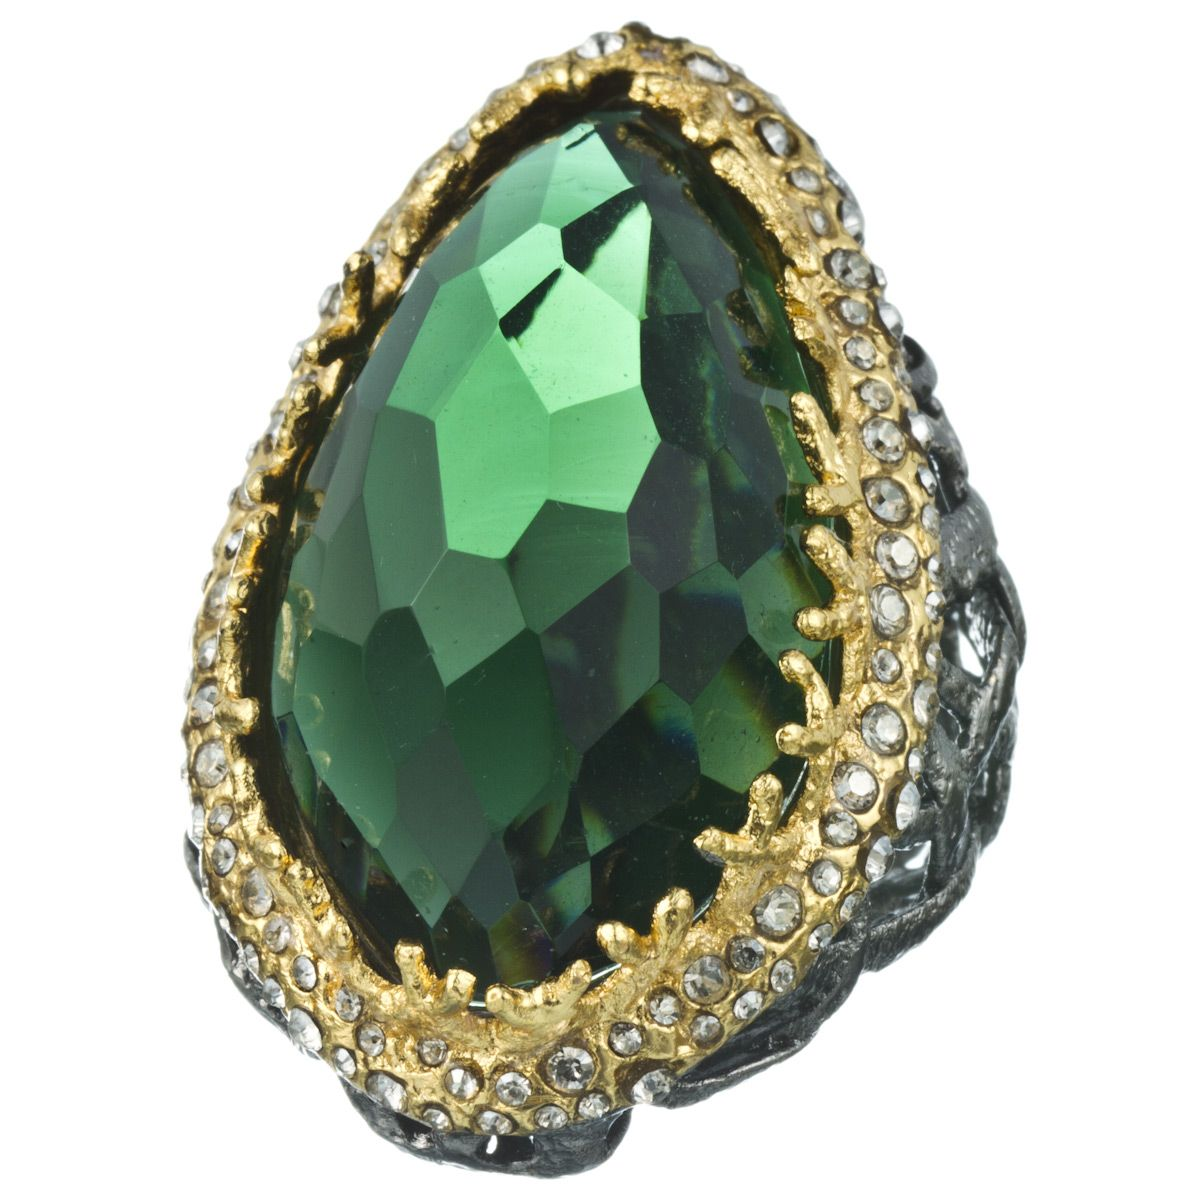 Pave Accented Gunmetal Hydro Qtz Green Tourmaline Woven Ring, Elements Collection by Alexis Bittar $275